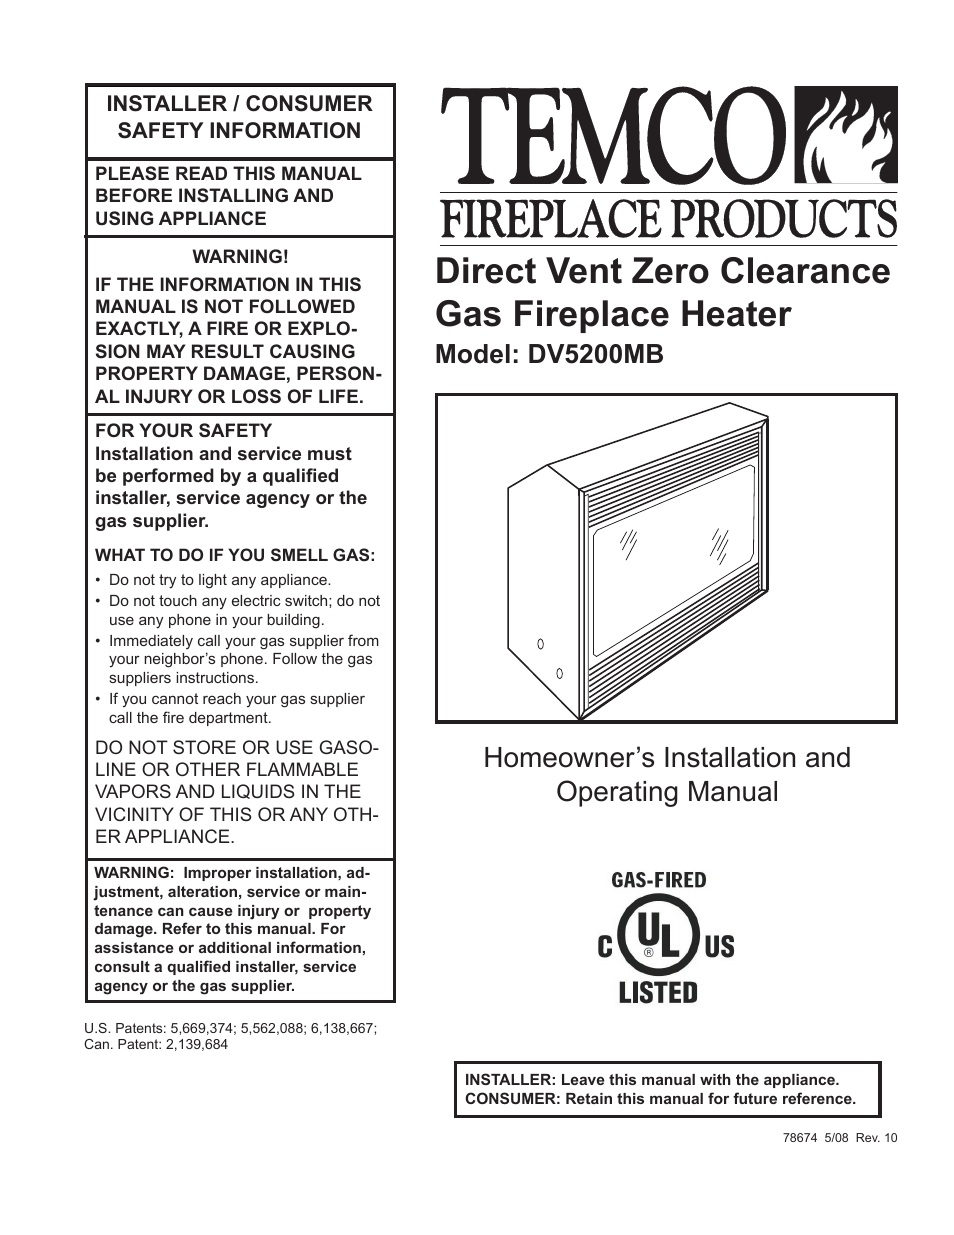 temco gas fireplace best fireplace 2017 temco fireplace wiring diagram of the a 1999